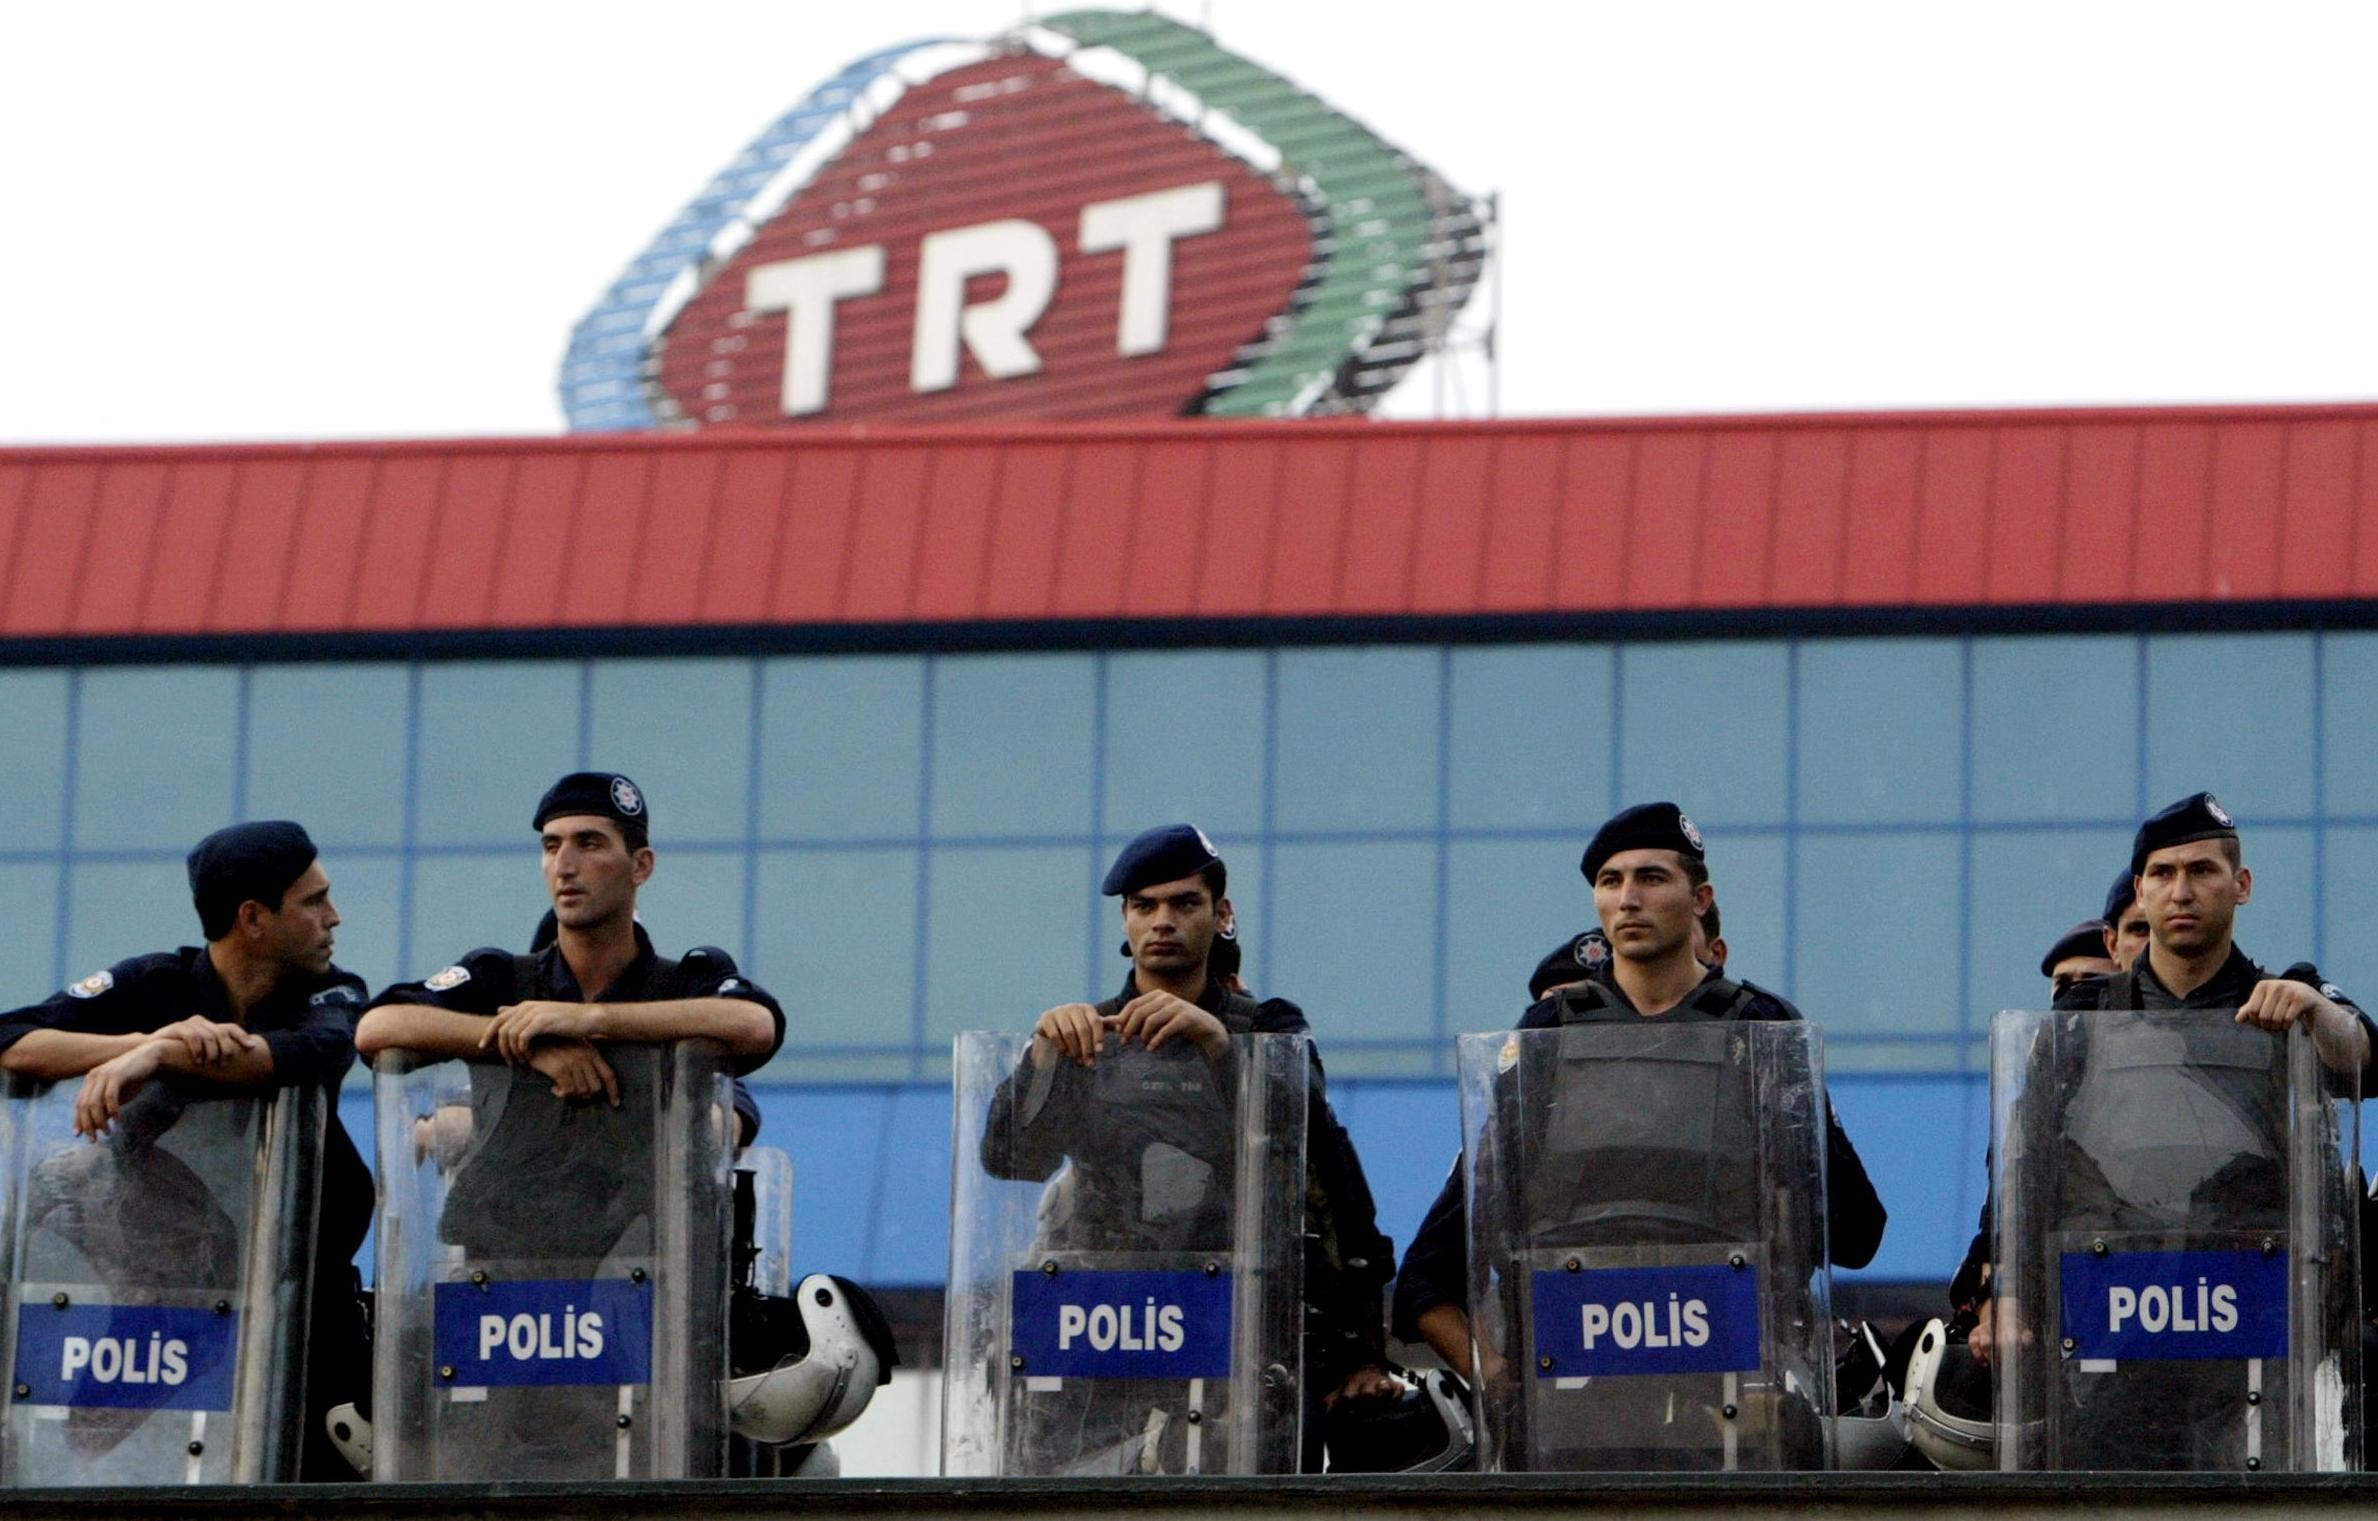 Turkish riot policemen stands guard as part of security measures in front of TRT (Turkish Radio Television Association) during a demonstration. (File photo: AFP)